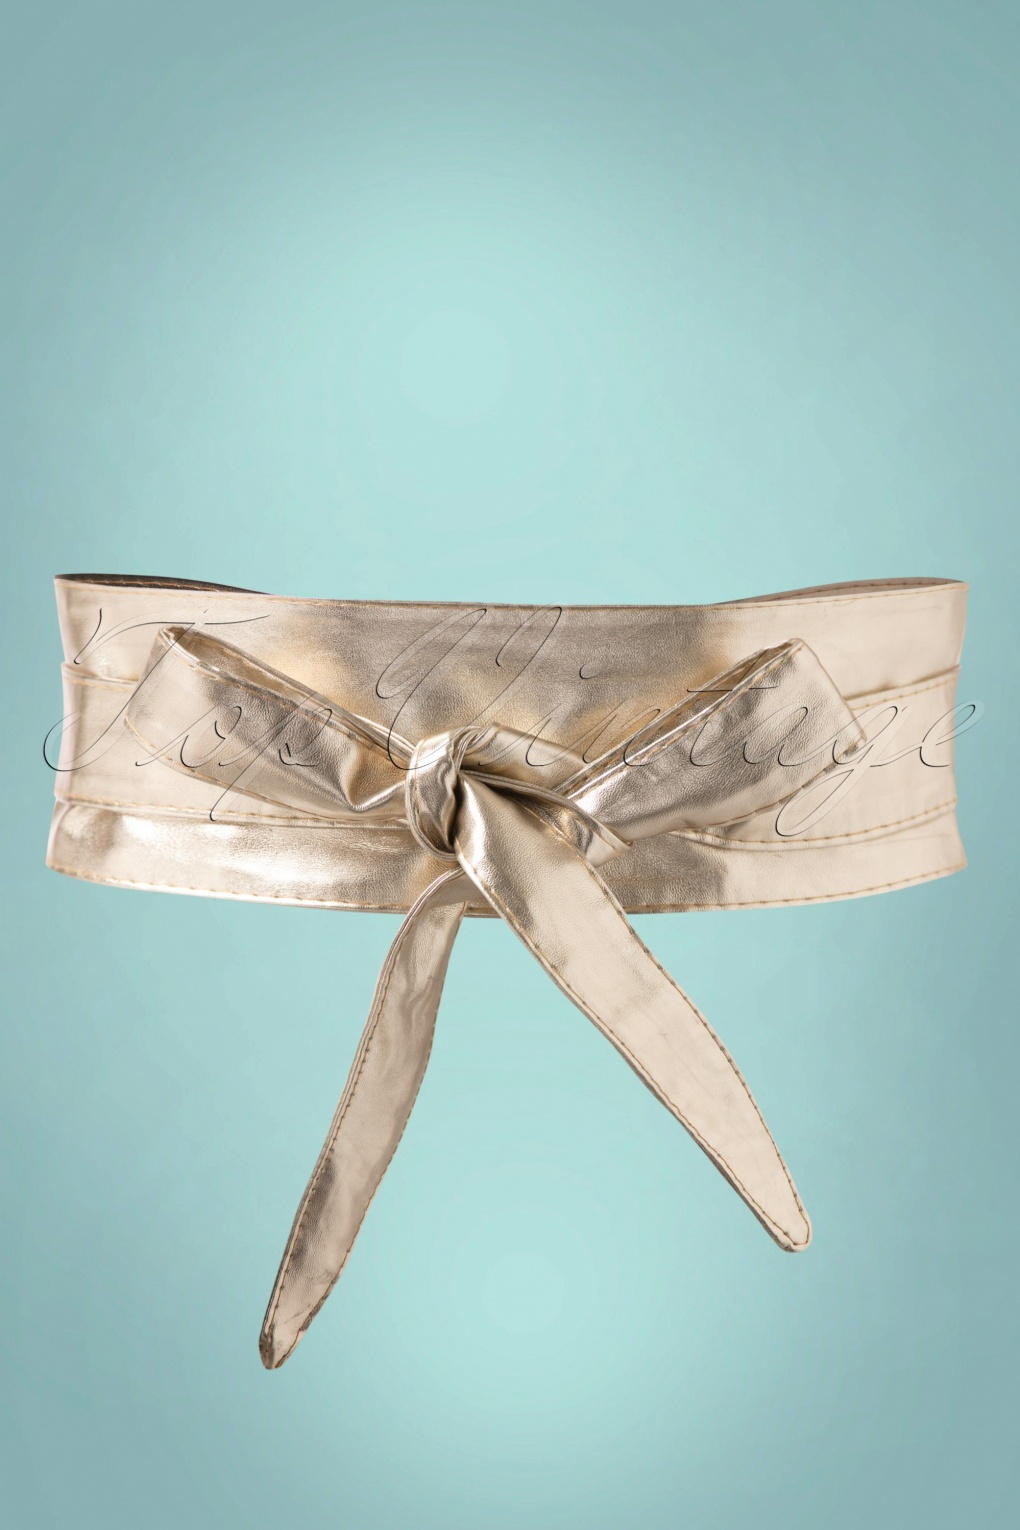 Vintage Wide Belts, Cinch Belts 40s, 50s Belts 50s Obi Wrap Belt in Gold £13.32 AT vintagedancer.com